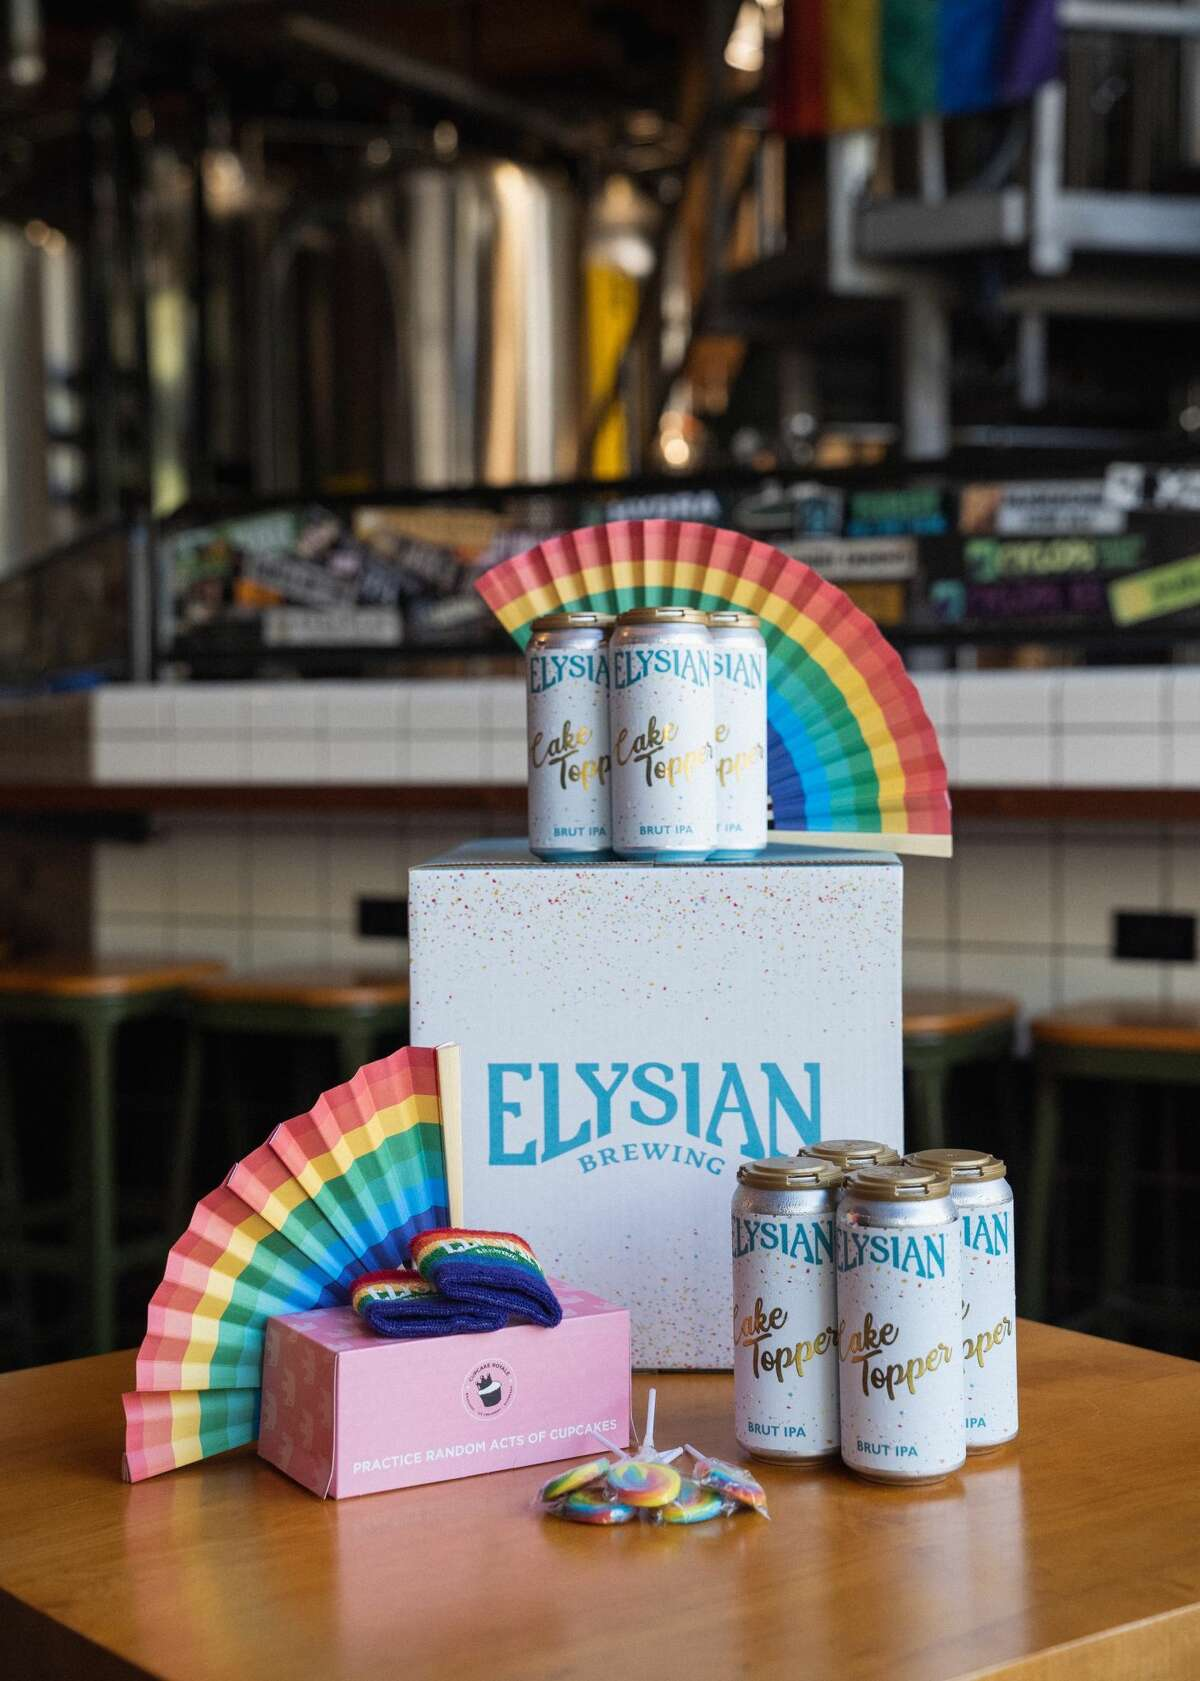 Cheers to celebrating love and equality... Elysian Brewing has created a pride box to help celebrate Seattle Pride virtually this year, filled with cupcakes, pride swag, and of course, beer. On June 4th, 2018, the Supreme Court ruled in favor of a cake shop owner who chose not to bake a wedding cake for a same-sex couple. One year after the Court decision, we chose to celebrate marriage equality by hosting a wedding in our Elysian Capitol Hill location. Cake Topper was brewed and released in honor of that special day. Elysian took the foundation of a Brut IPA and layered it with pink guava, vanilla, and lactose to emulate the flavors of a fruity, champagne-infused wedding cake. Inside their $25 pride boxes, enjoy eight Cake Topper 16oz cans, a 2-pack of